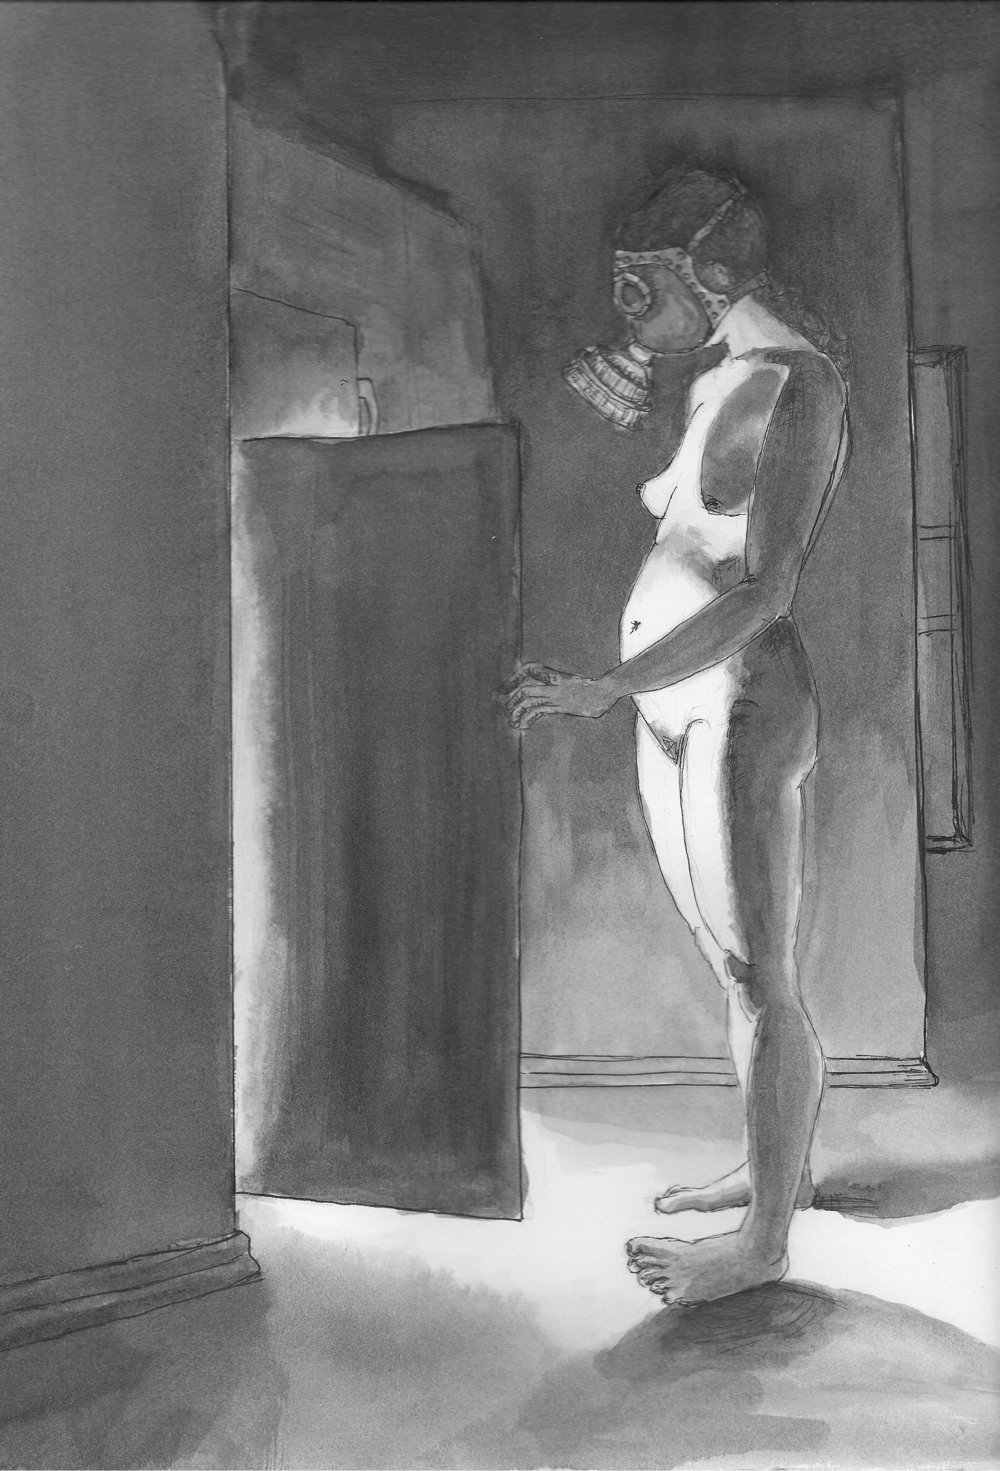 Midnight Snack,ink wash on paper, 2012. Buy prints on Society6.